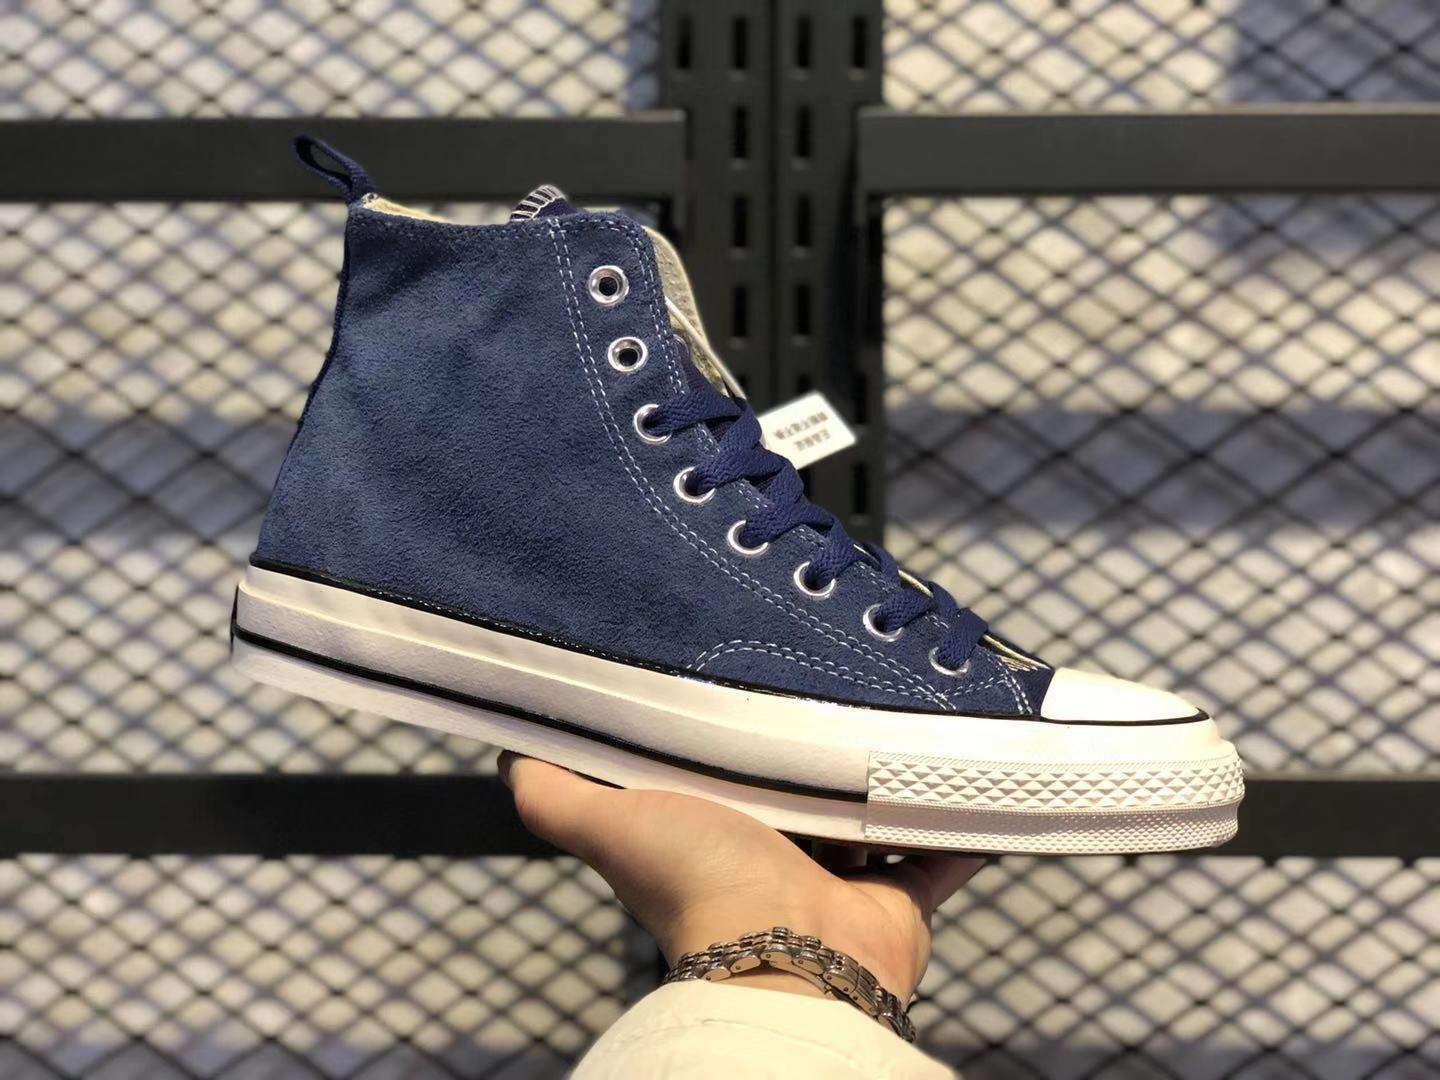 Converse x Madness 3.0 Blue Hairy Suede And Canvas Hot Sale